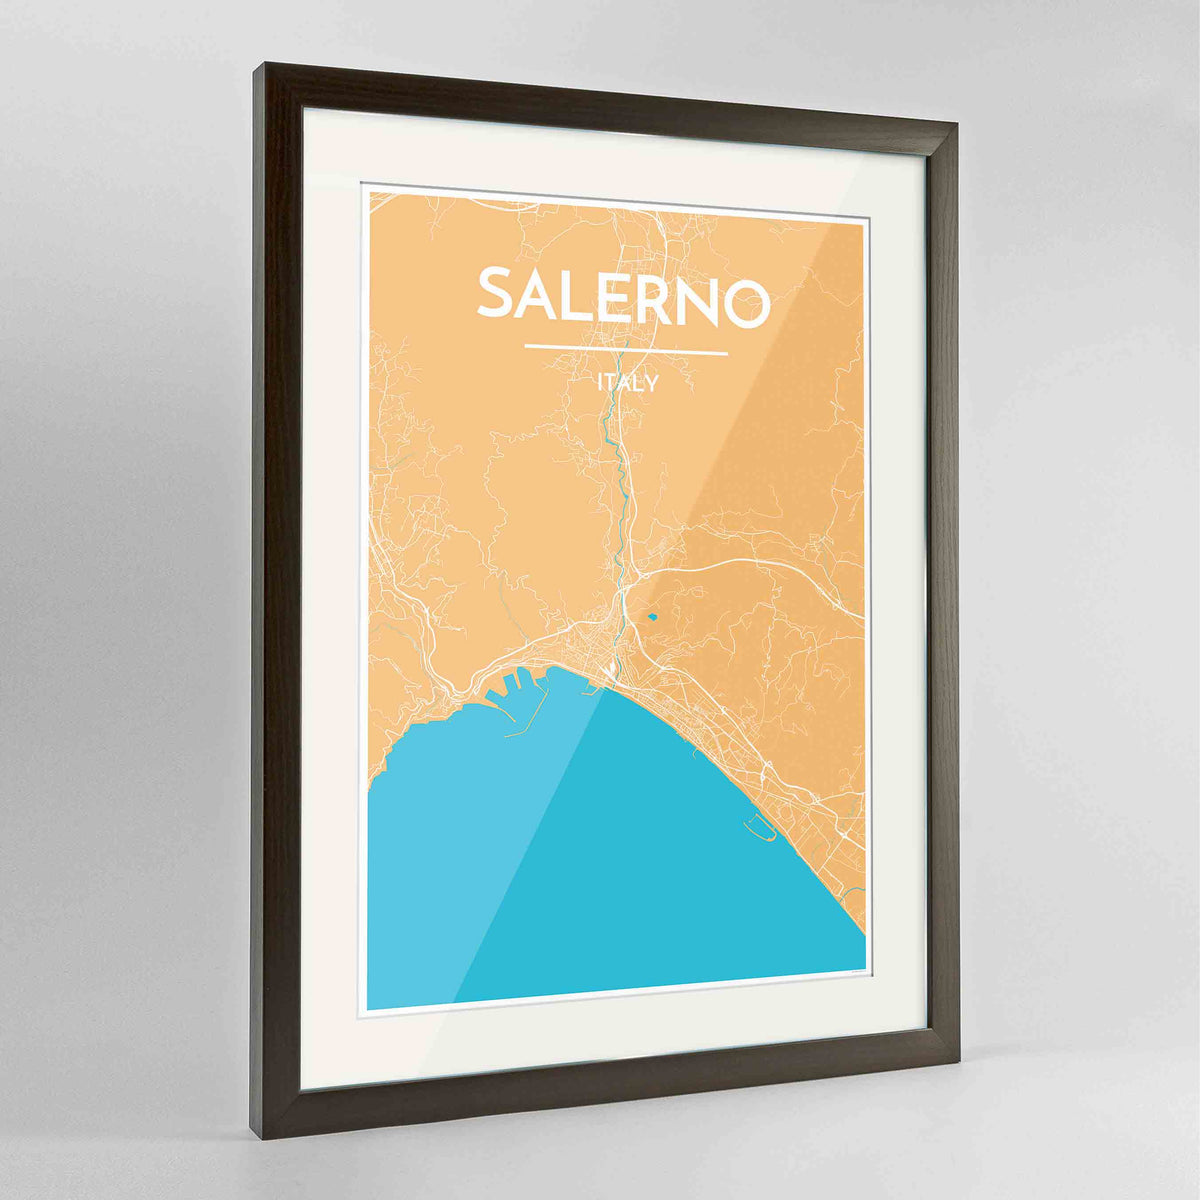 "Framed Salerno Map Art Print 24x36"" Contemporary Walnut frame Point Two Design Group"